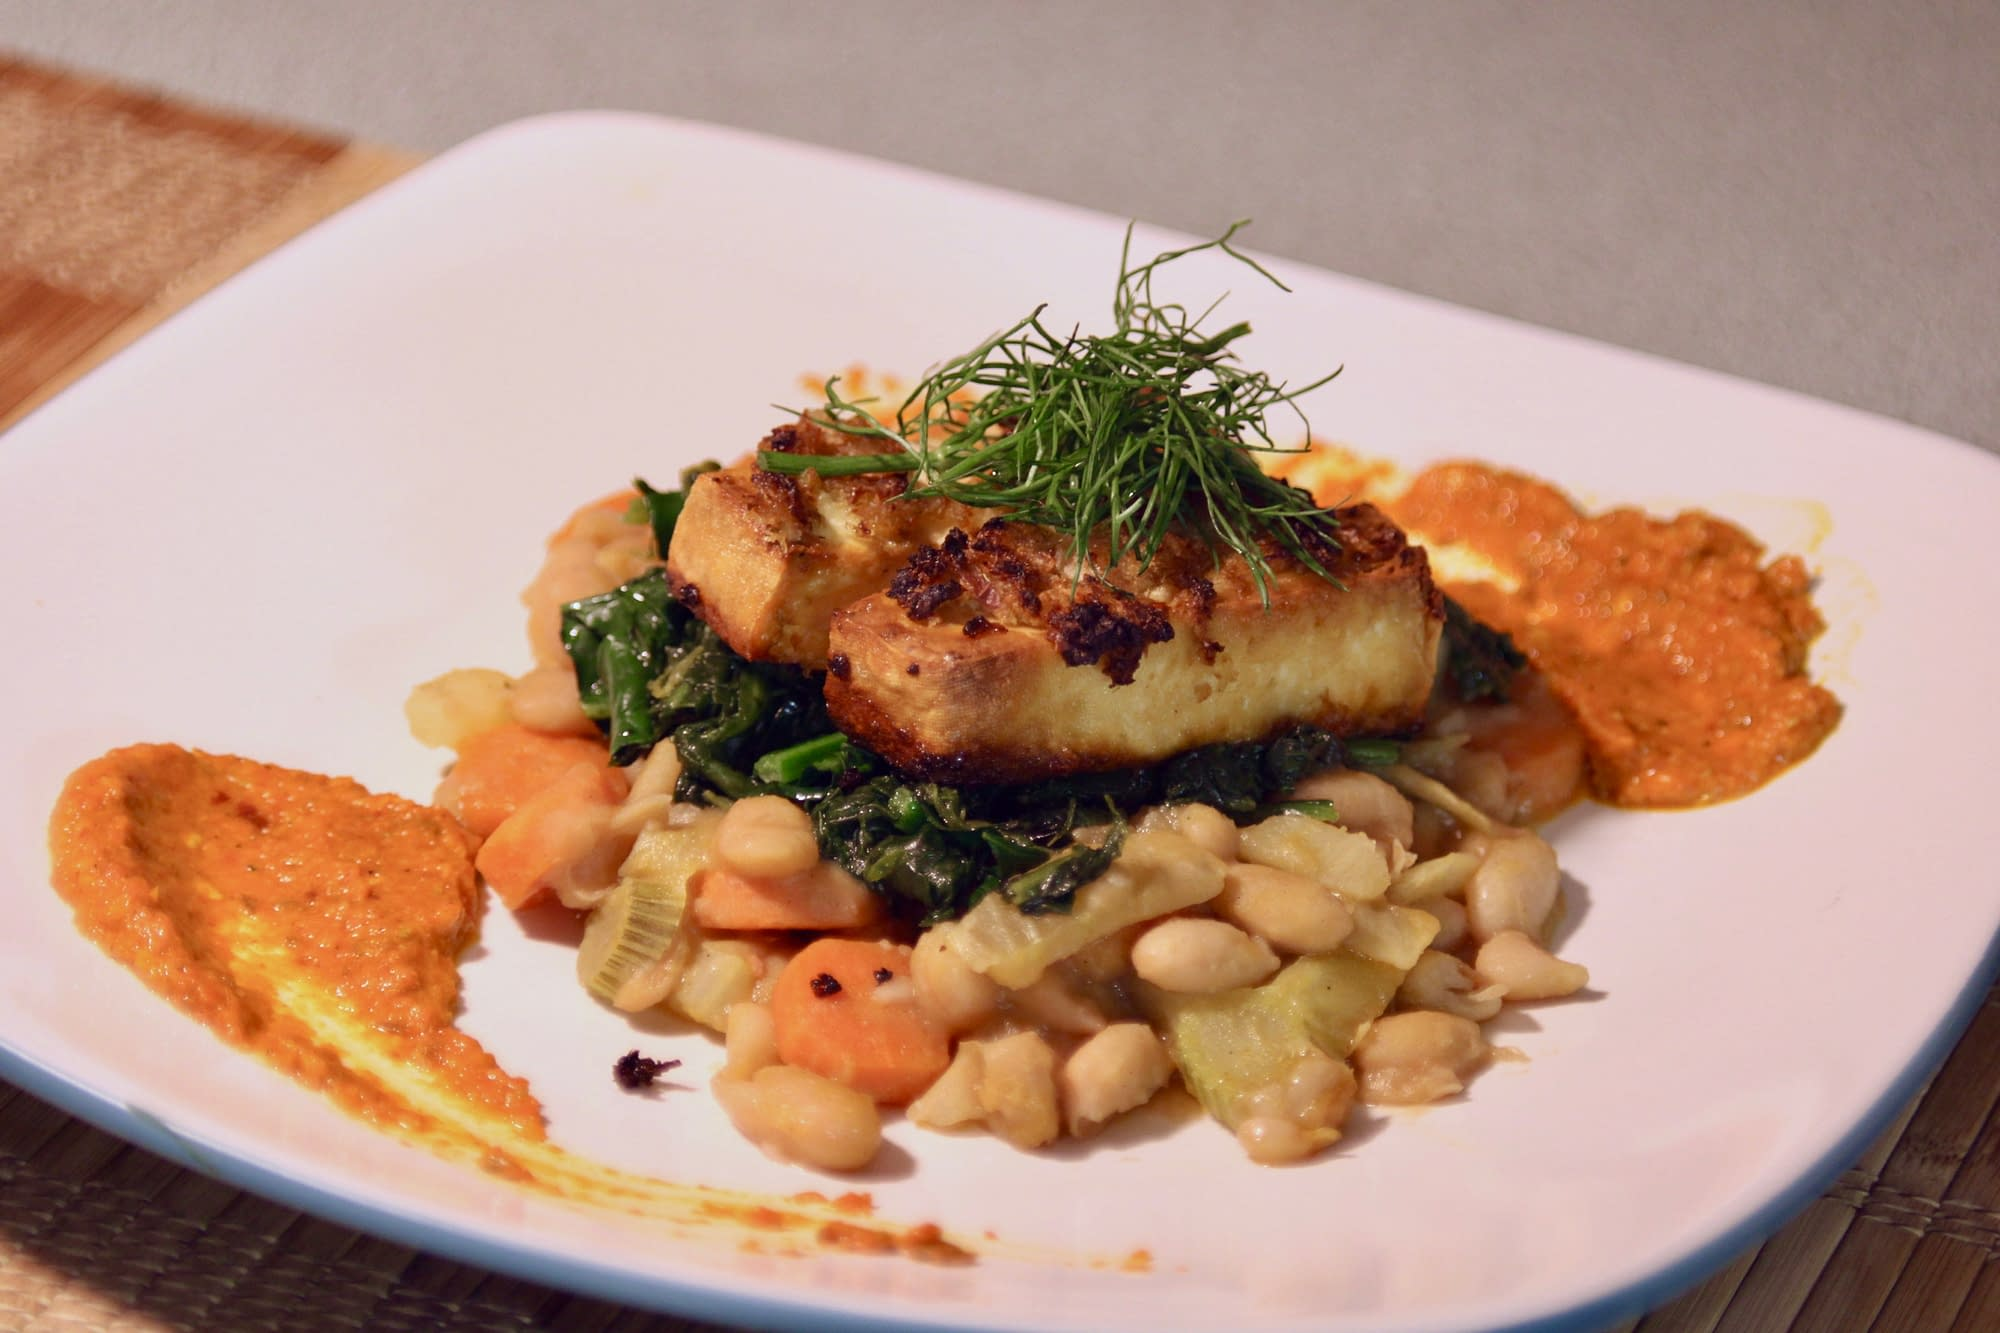 Roasted Tofu with white beans and kale